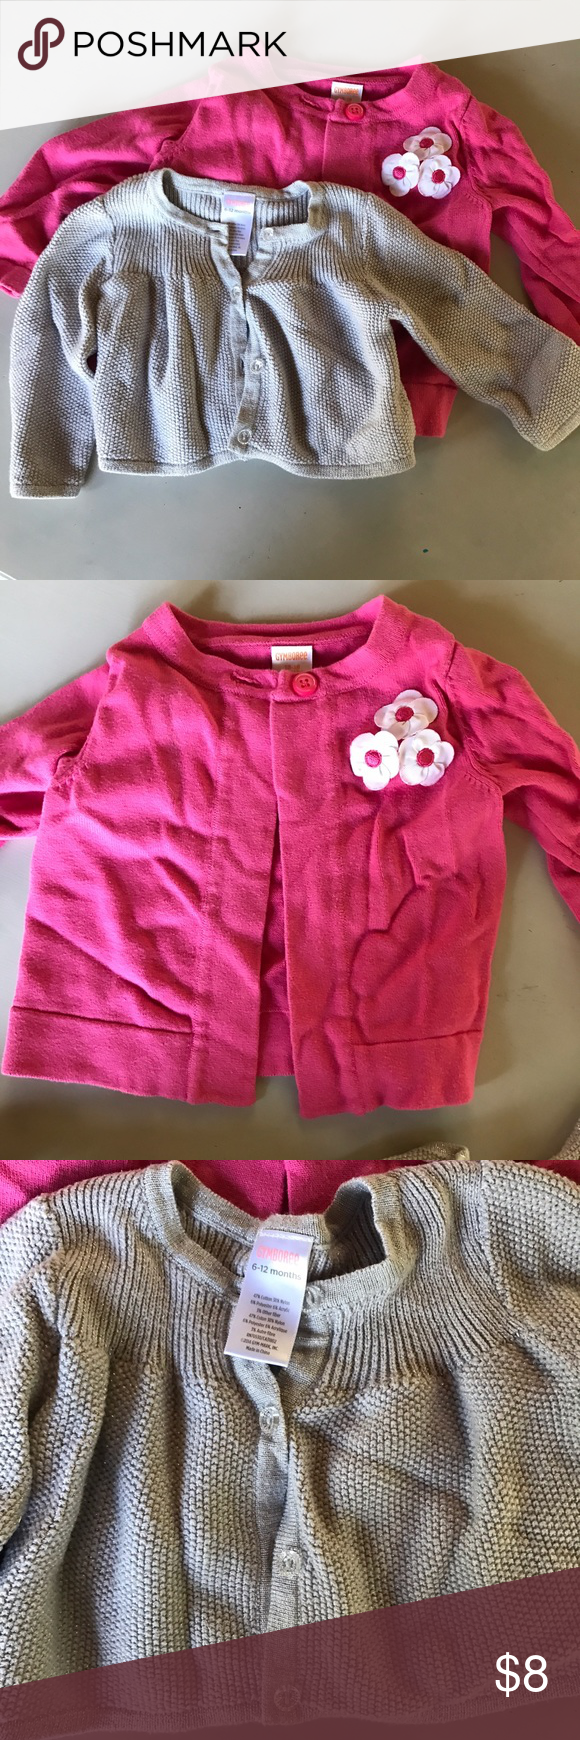 Girls toddler sweaters bundle 🌲 | Gymboree, Size 12 and Floral